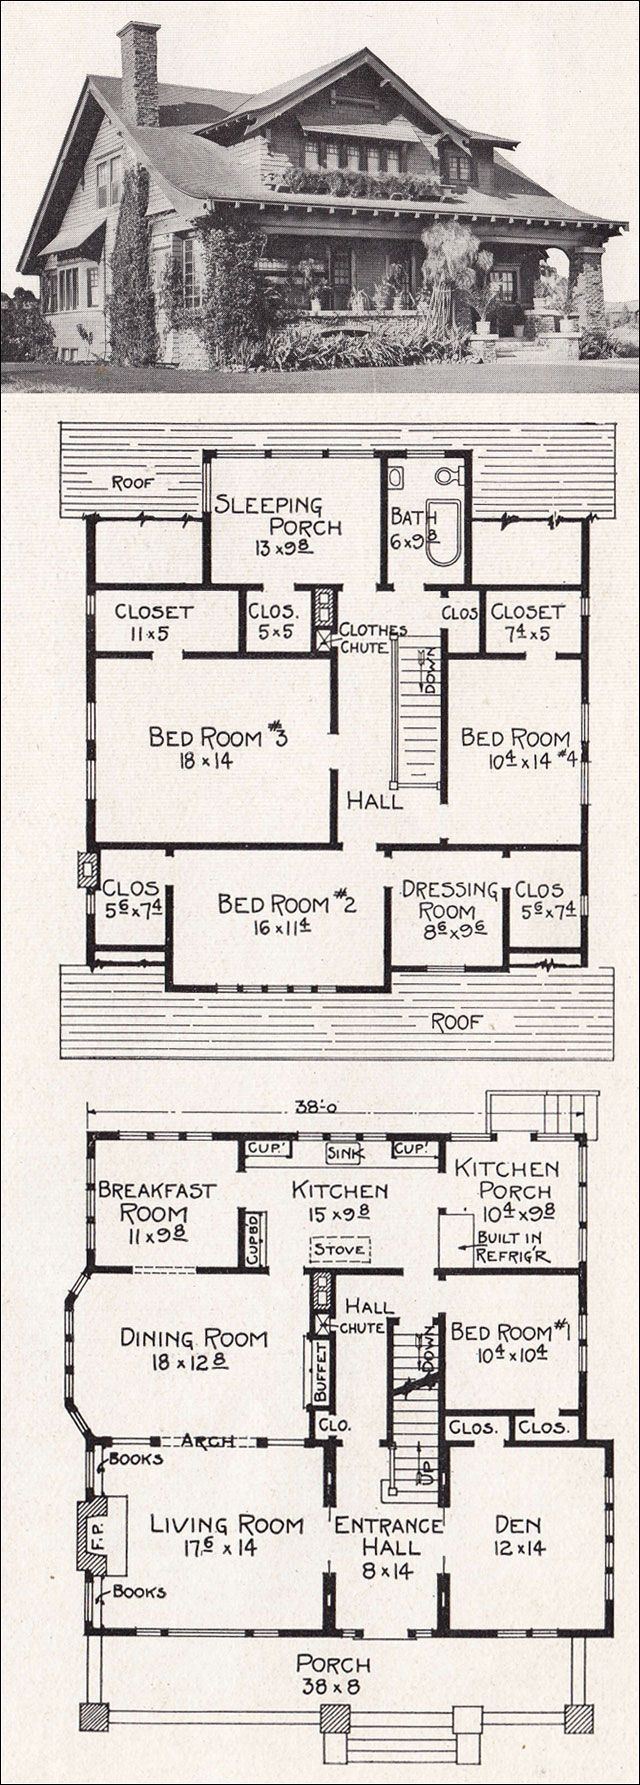 Vintage bungalow house plan architectural illustrations House plans craftsman bungalow style